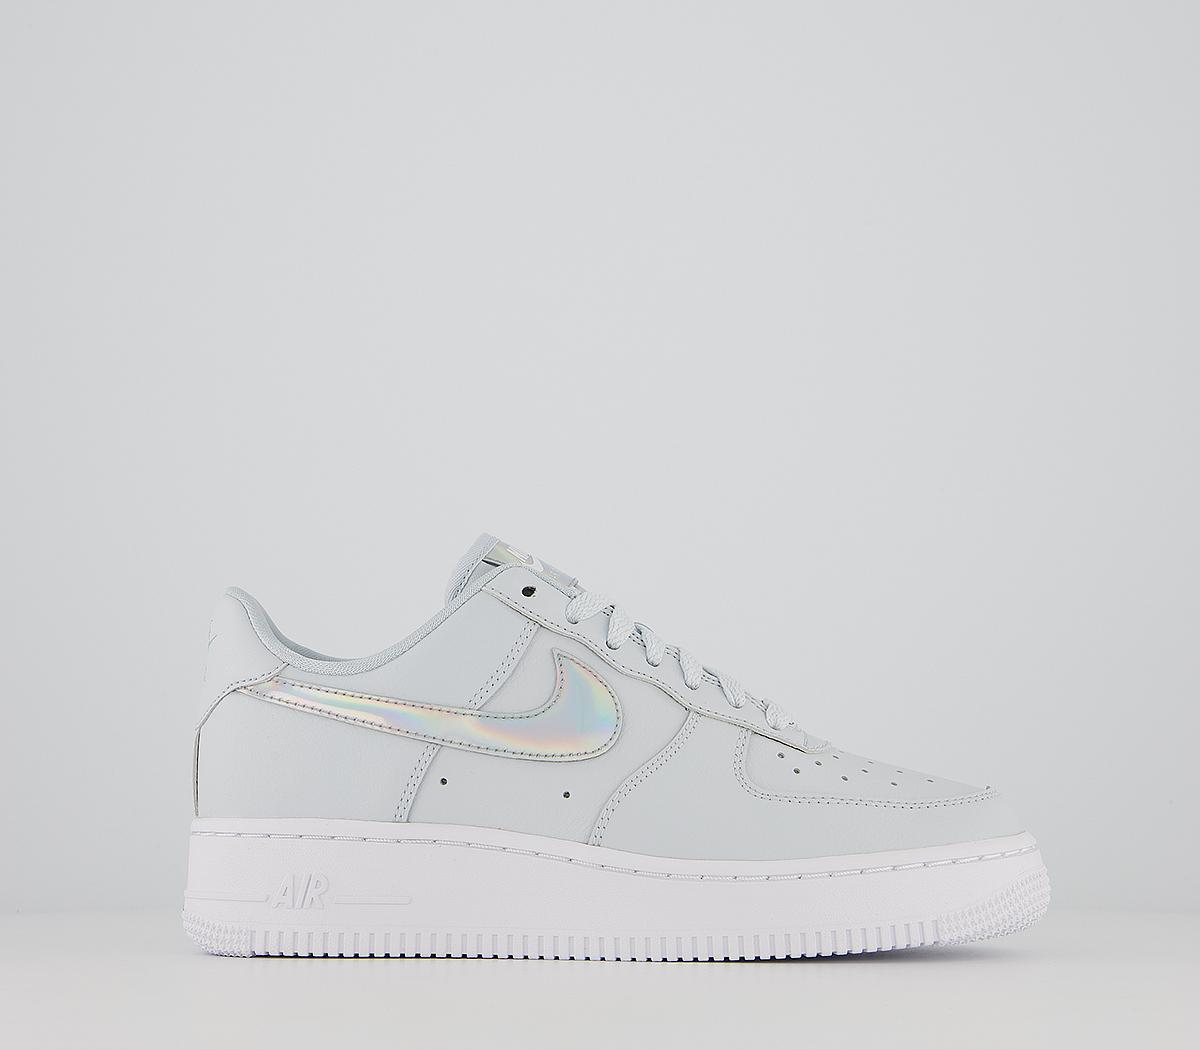 Nike Air Force 1 '07 Trainers In White